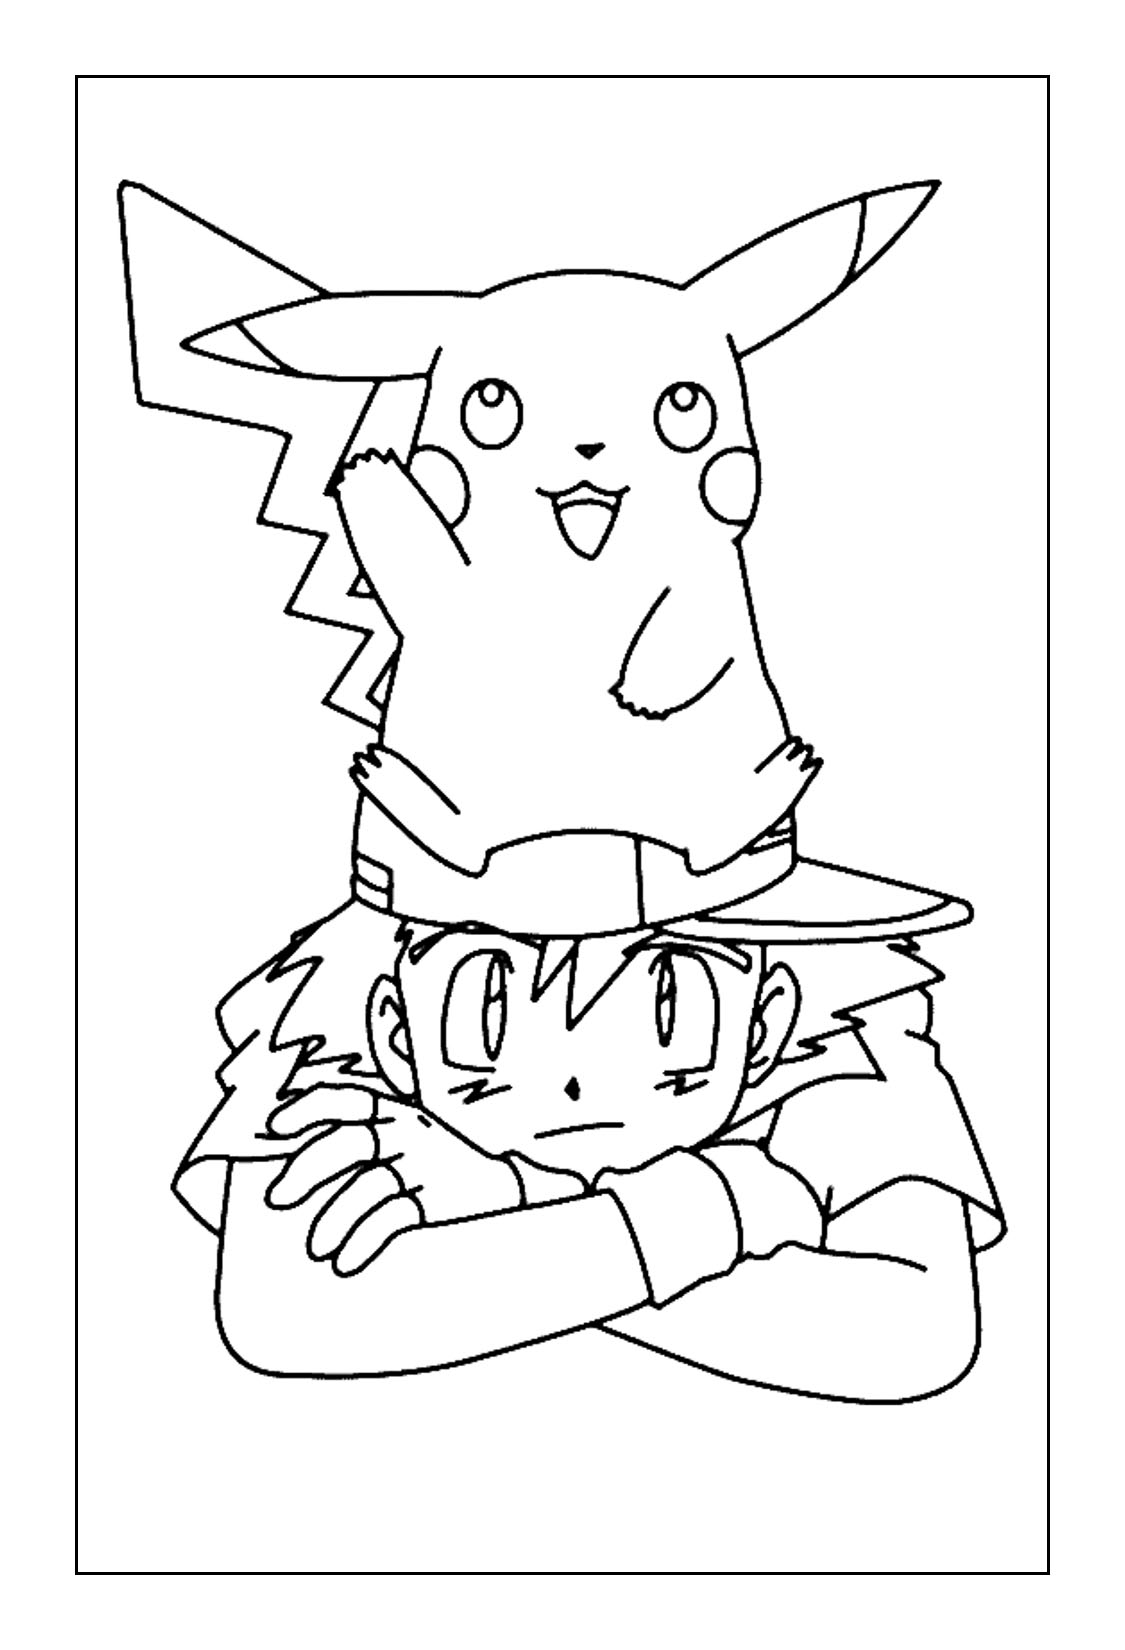 Ash and Pikachu Coloring Pages